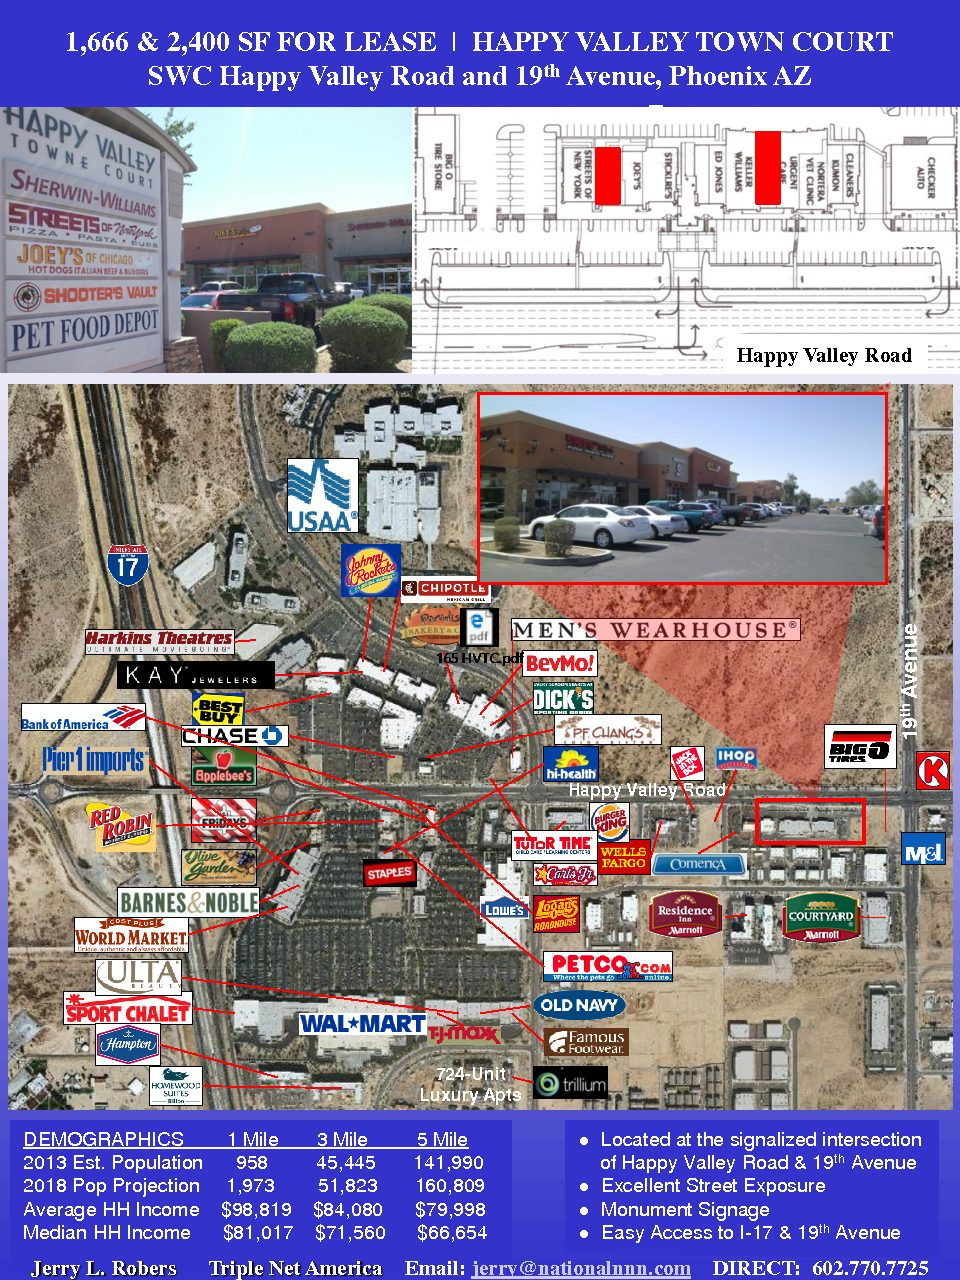 1,666 & 2,400 SF HVTC For Lease